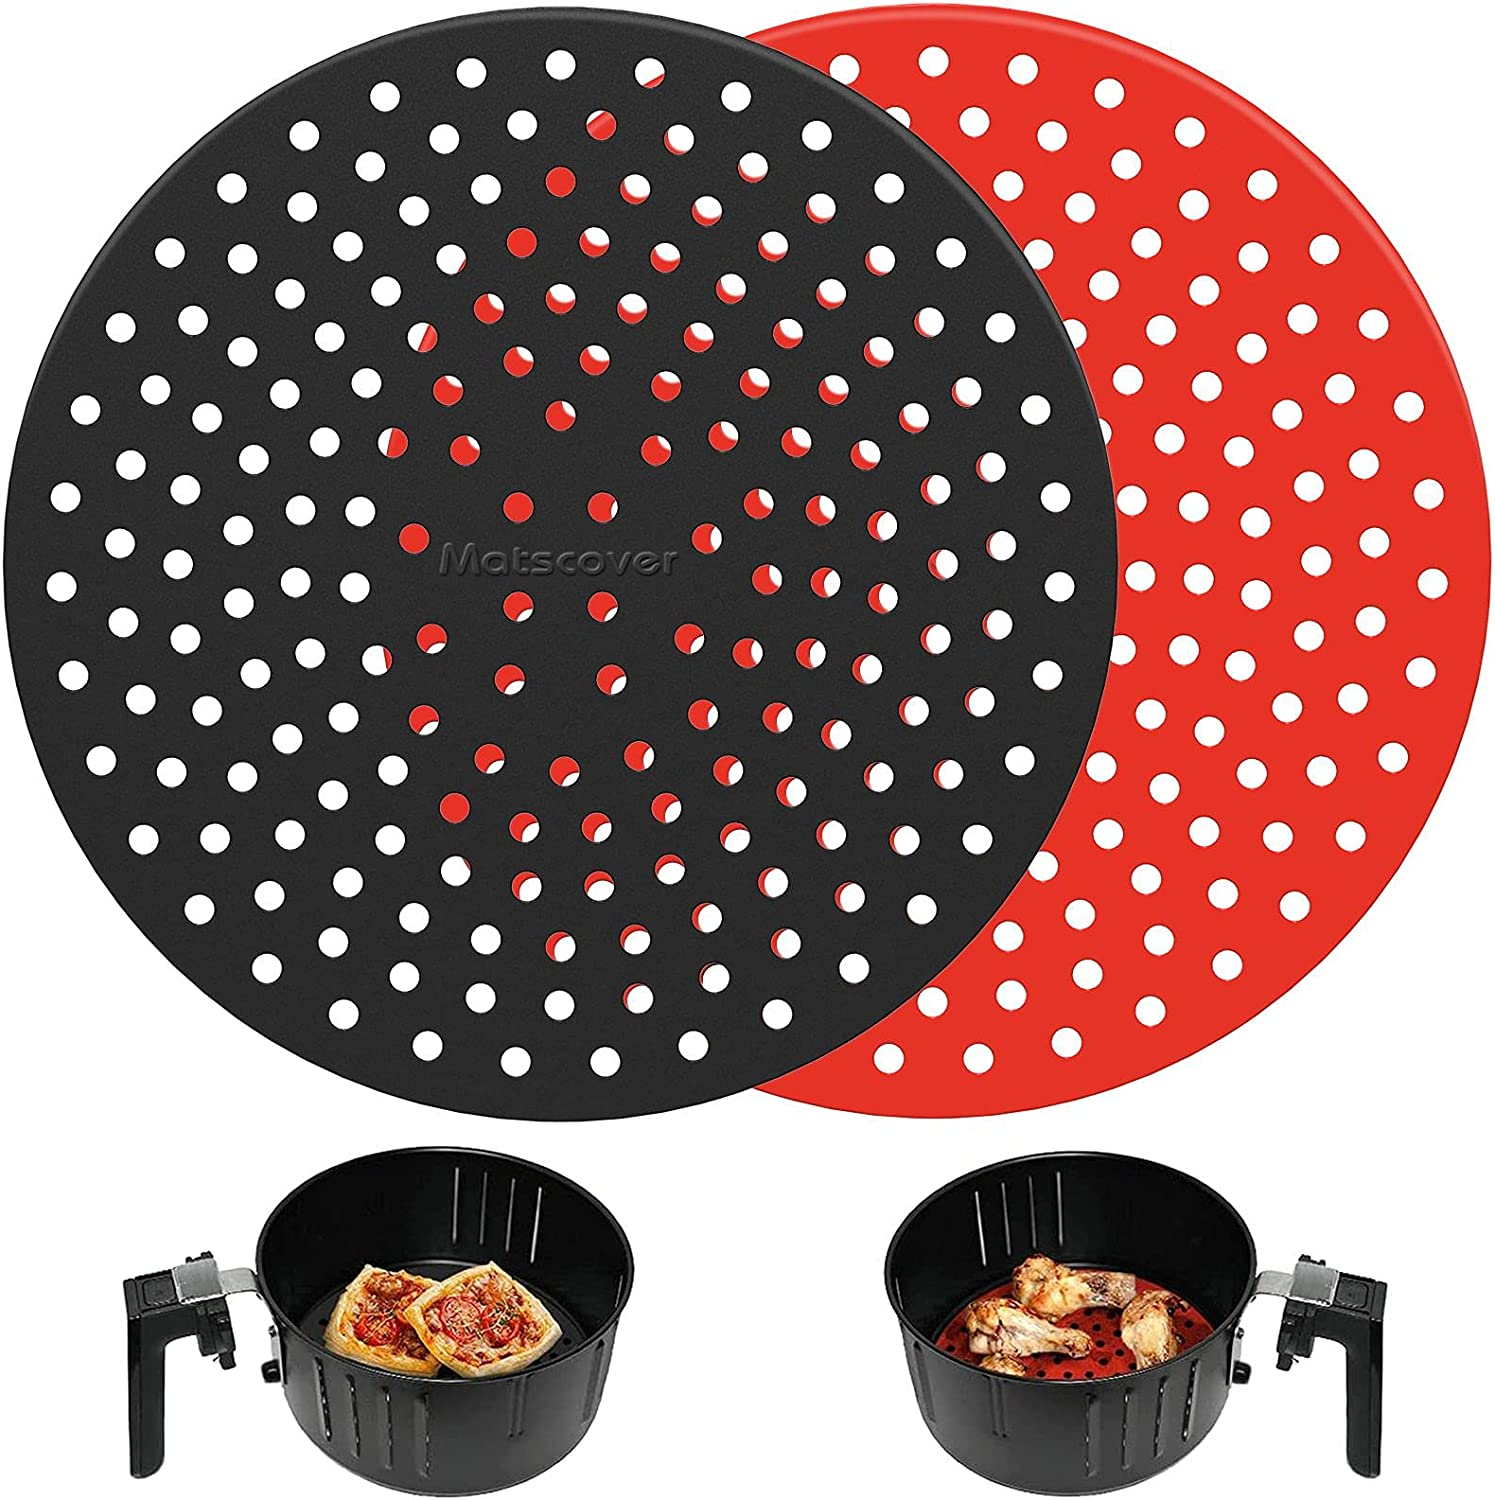 Upgrade Thicker Reusable Air Fryer Liners, 8'' Round Silicone Air Fryer Liners, Non-Stick Air Fryer Accessories for Gourmia NINJA Nuwave Chefman and More, Safe Air Fryer Mat Replace parchment